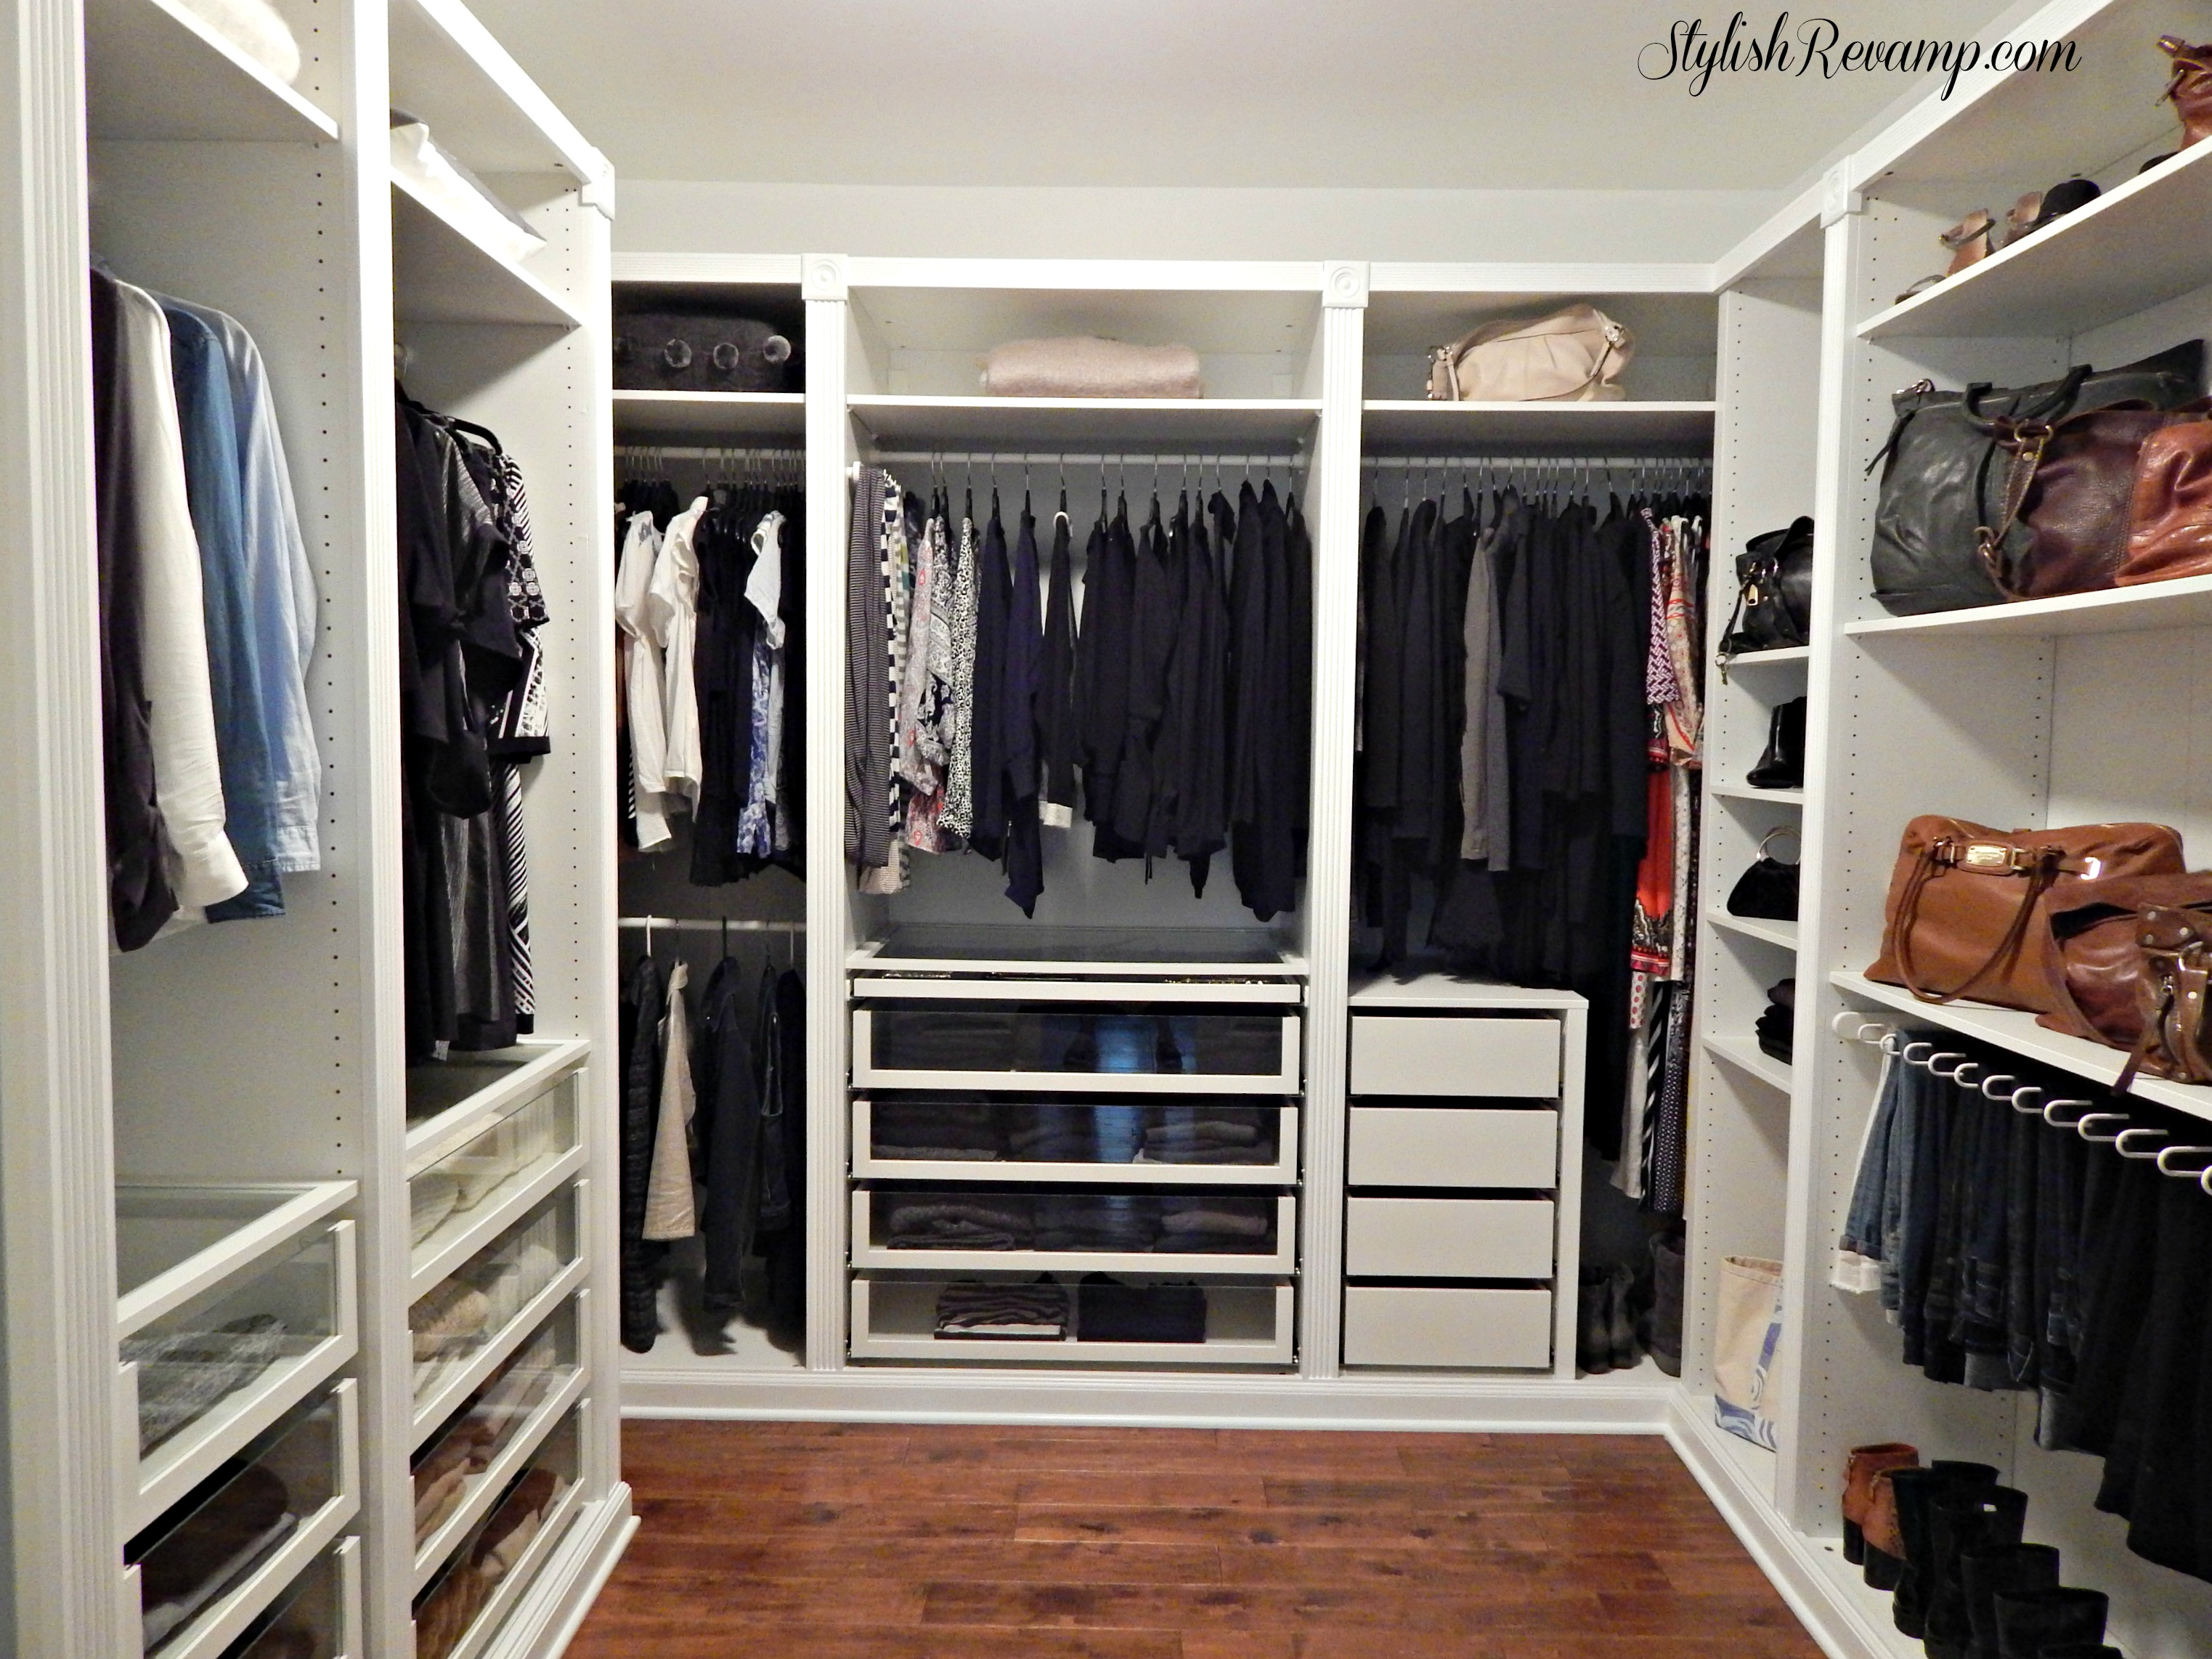 Ikea System Revamping My Closet With The Ikea Pax Wardrobe Stylish